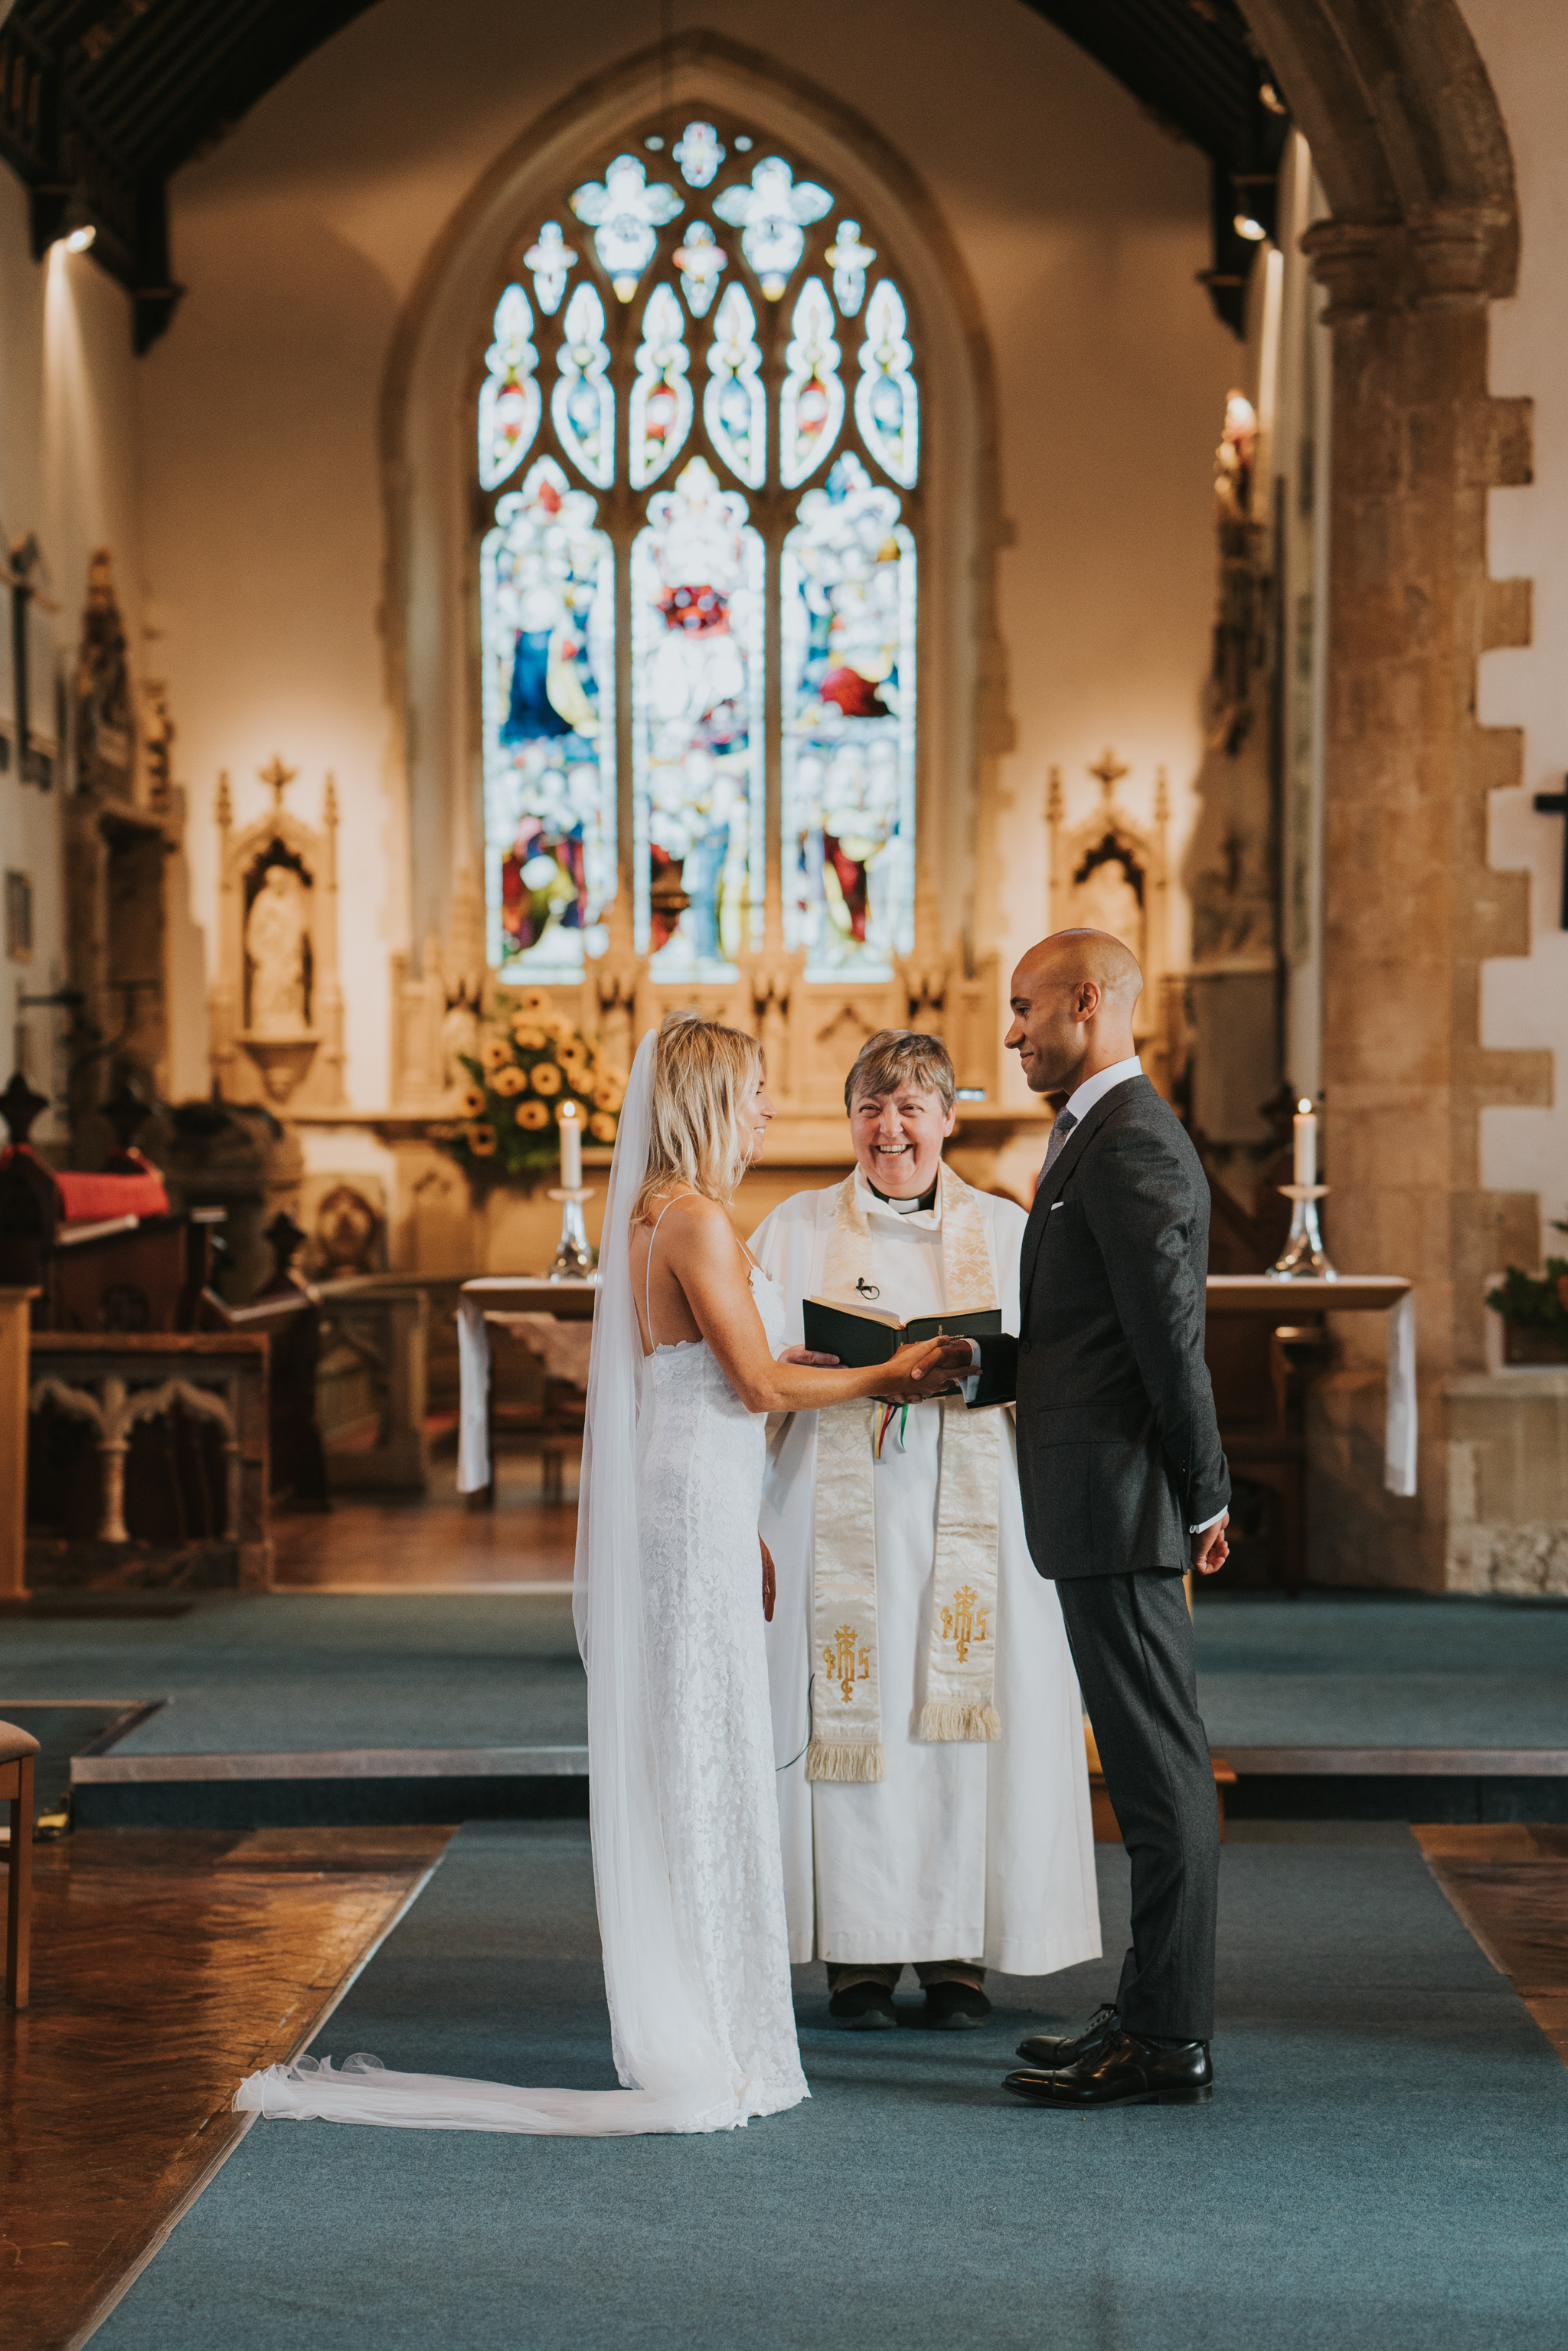 intimate-english-church-wedding-sarah-alex-colchester-essex-grace-elizabeth-colchester-essex-alternative-wedding-lifestyle-photographer-essex-suffolk-norfolk-devon (46 of 92).jpg